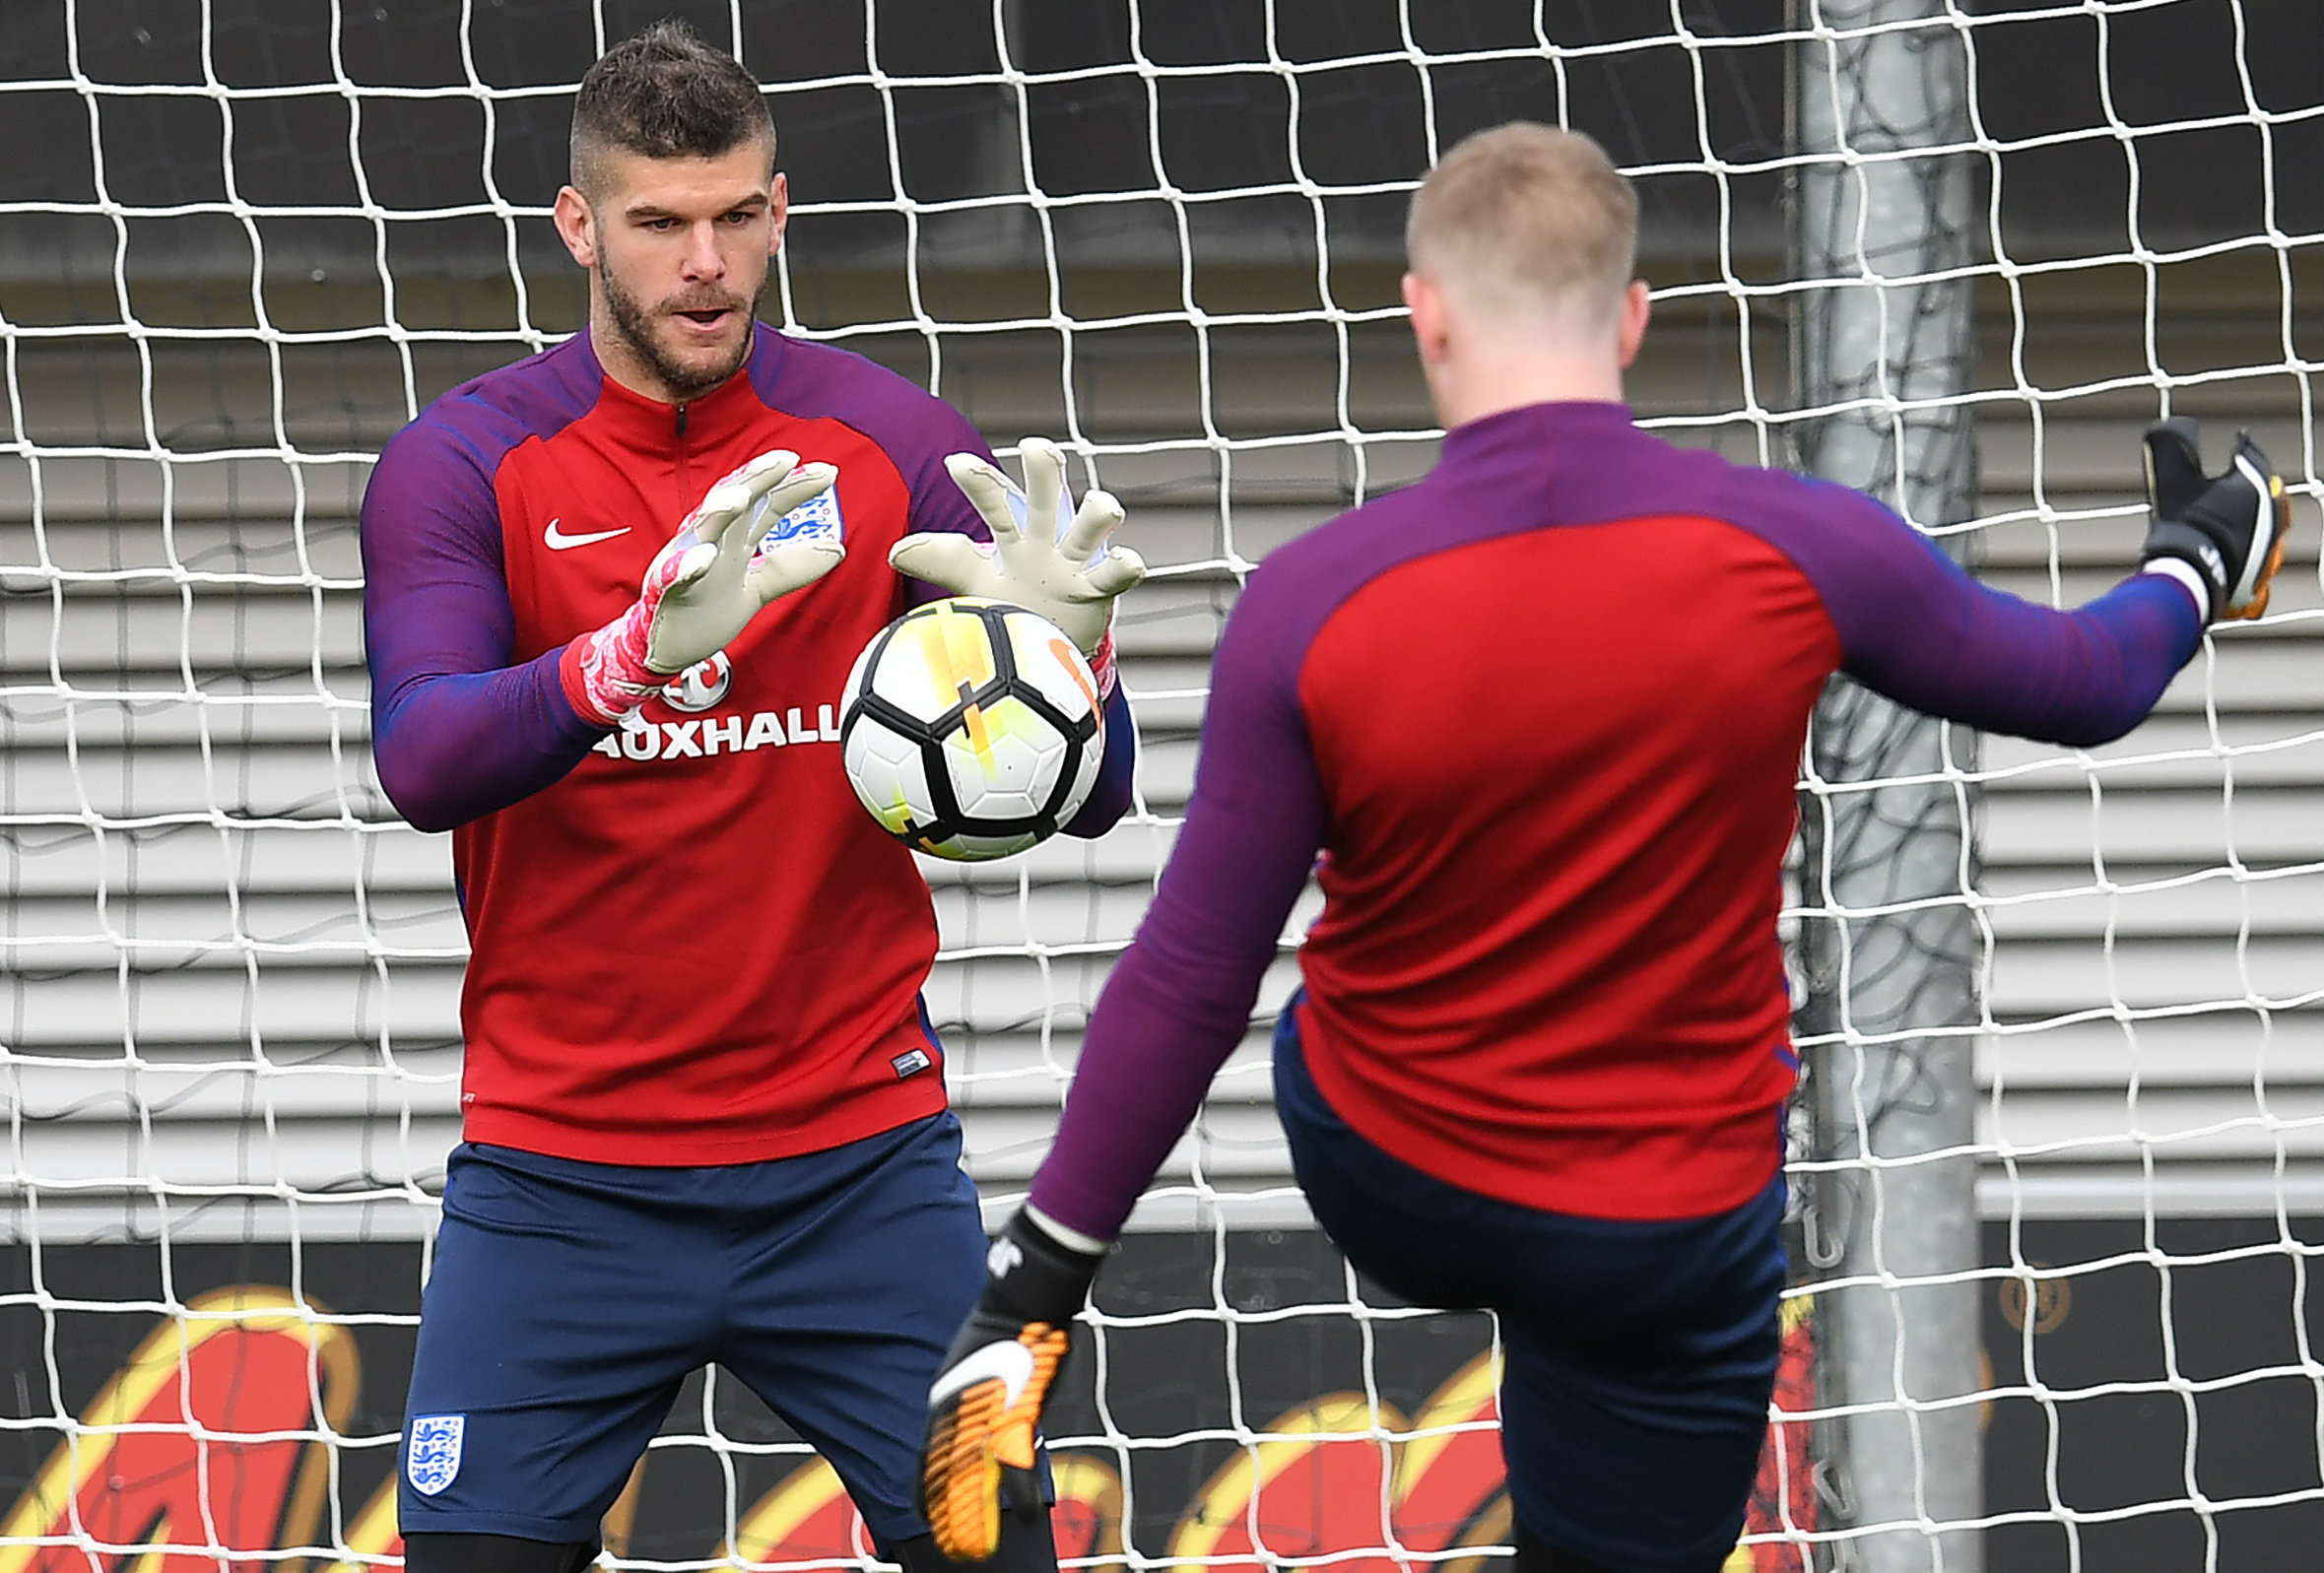 Fraser Forster has made 28 saves in the EPL so far this season.